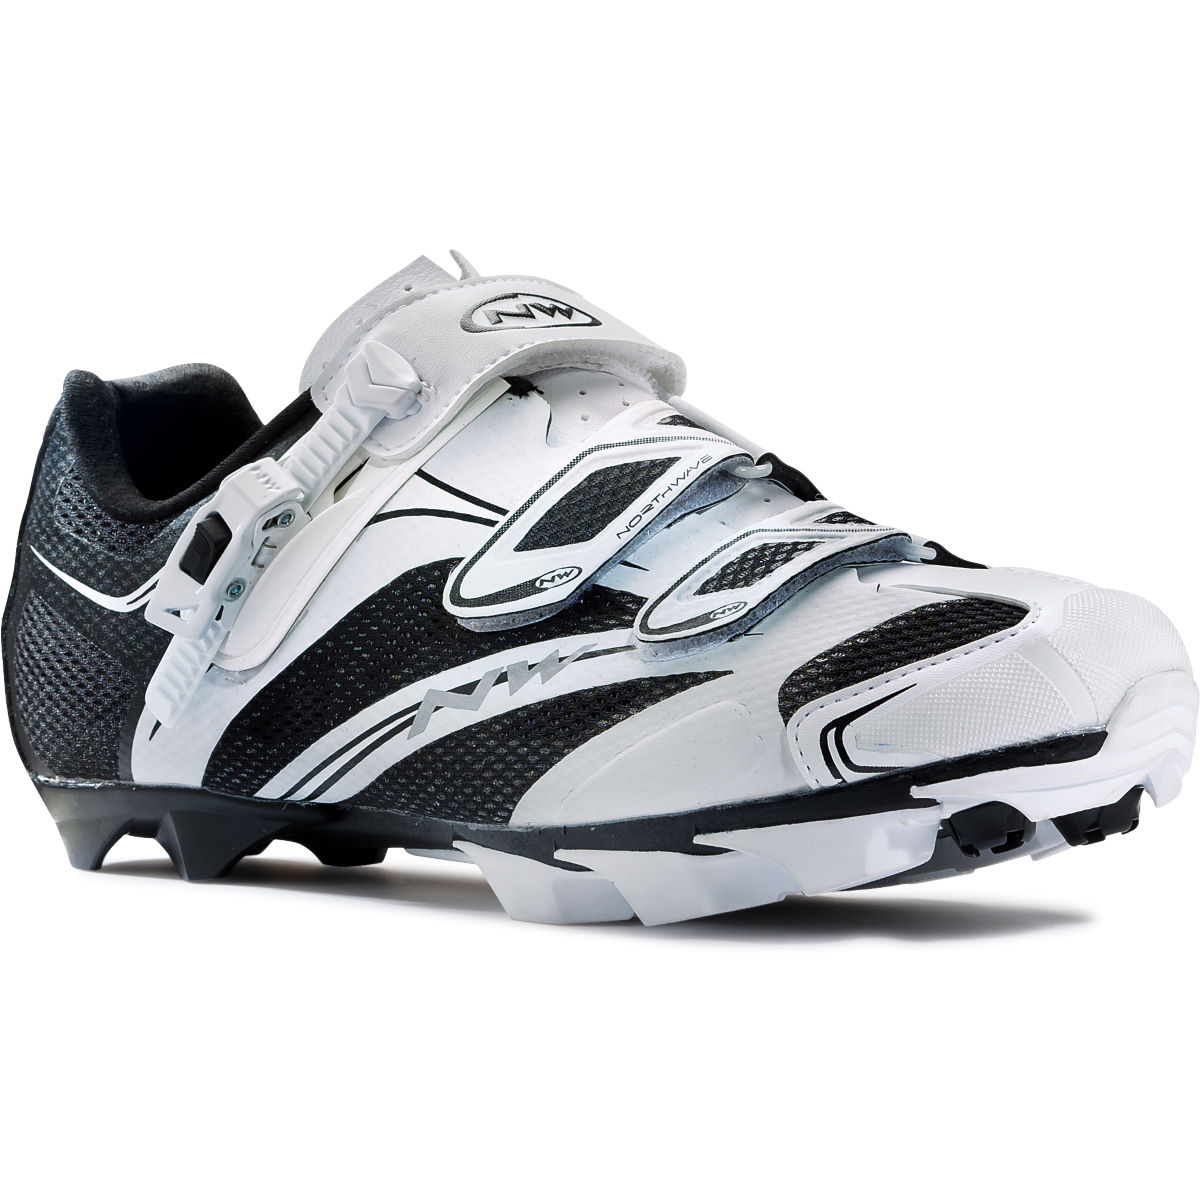 Northwave Scorpius SRS MTB Shoes